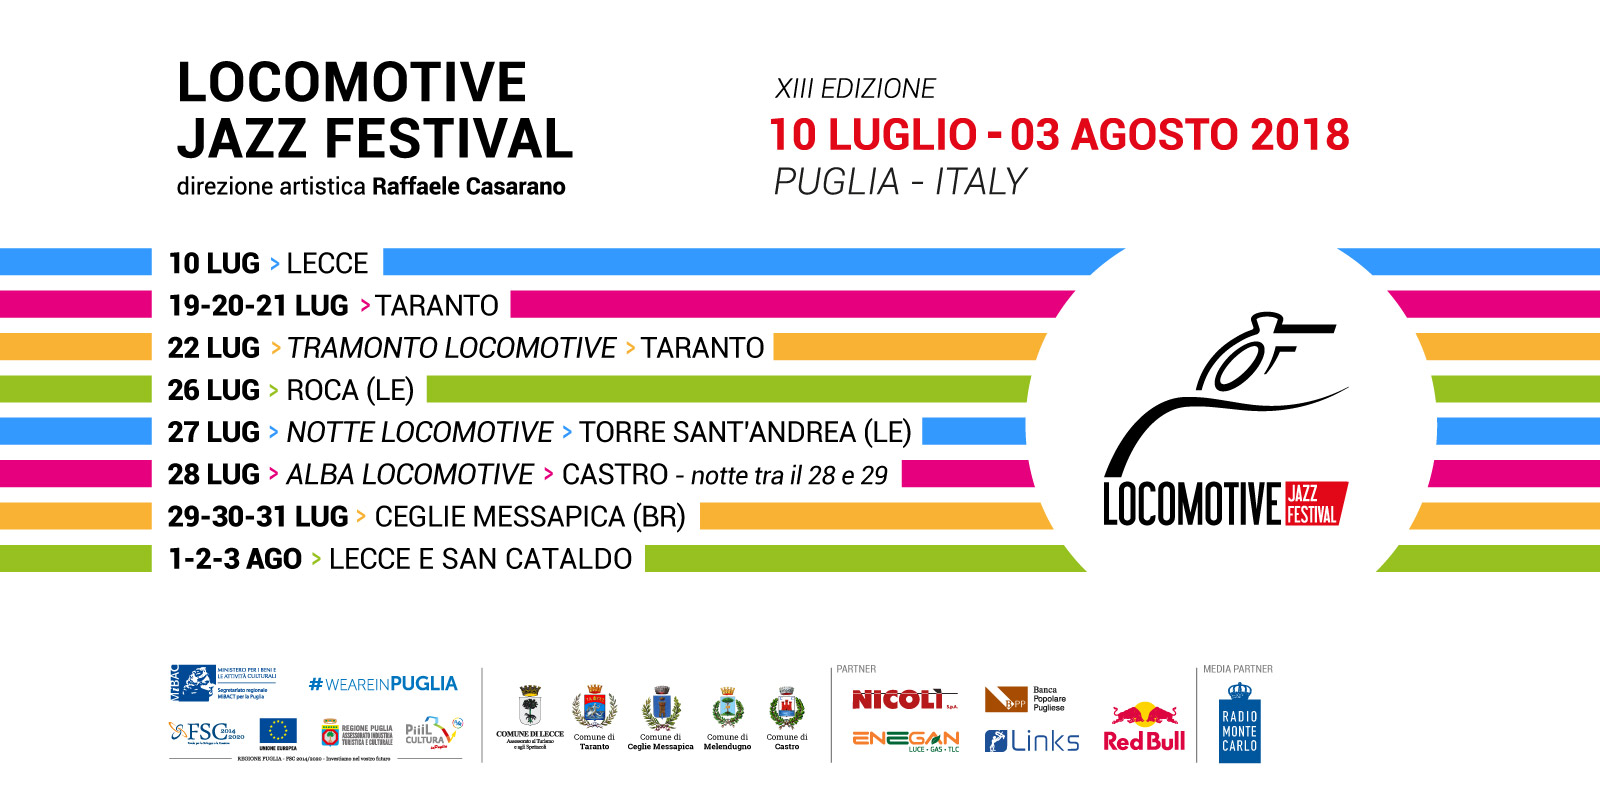 LOCOMOTIVE JAZZ FESTIVAL - DATE